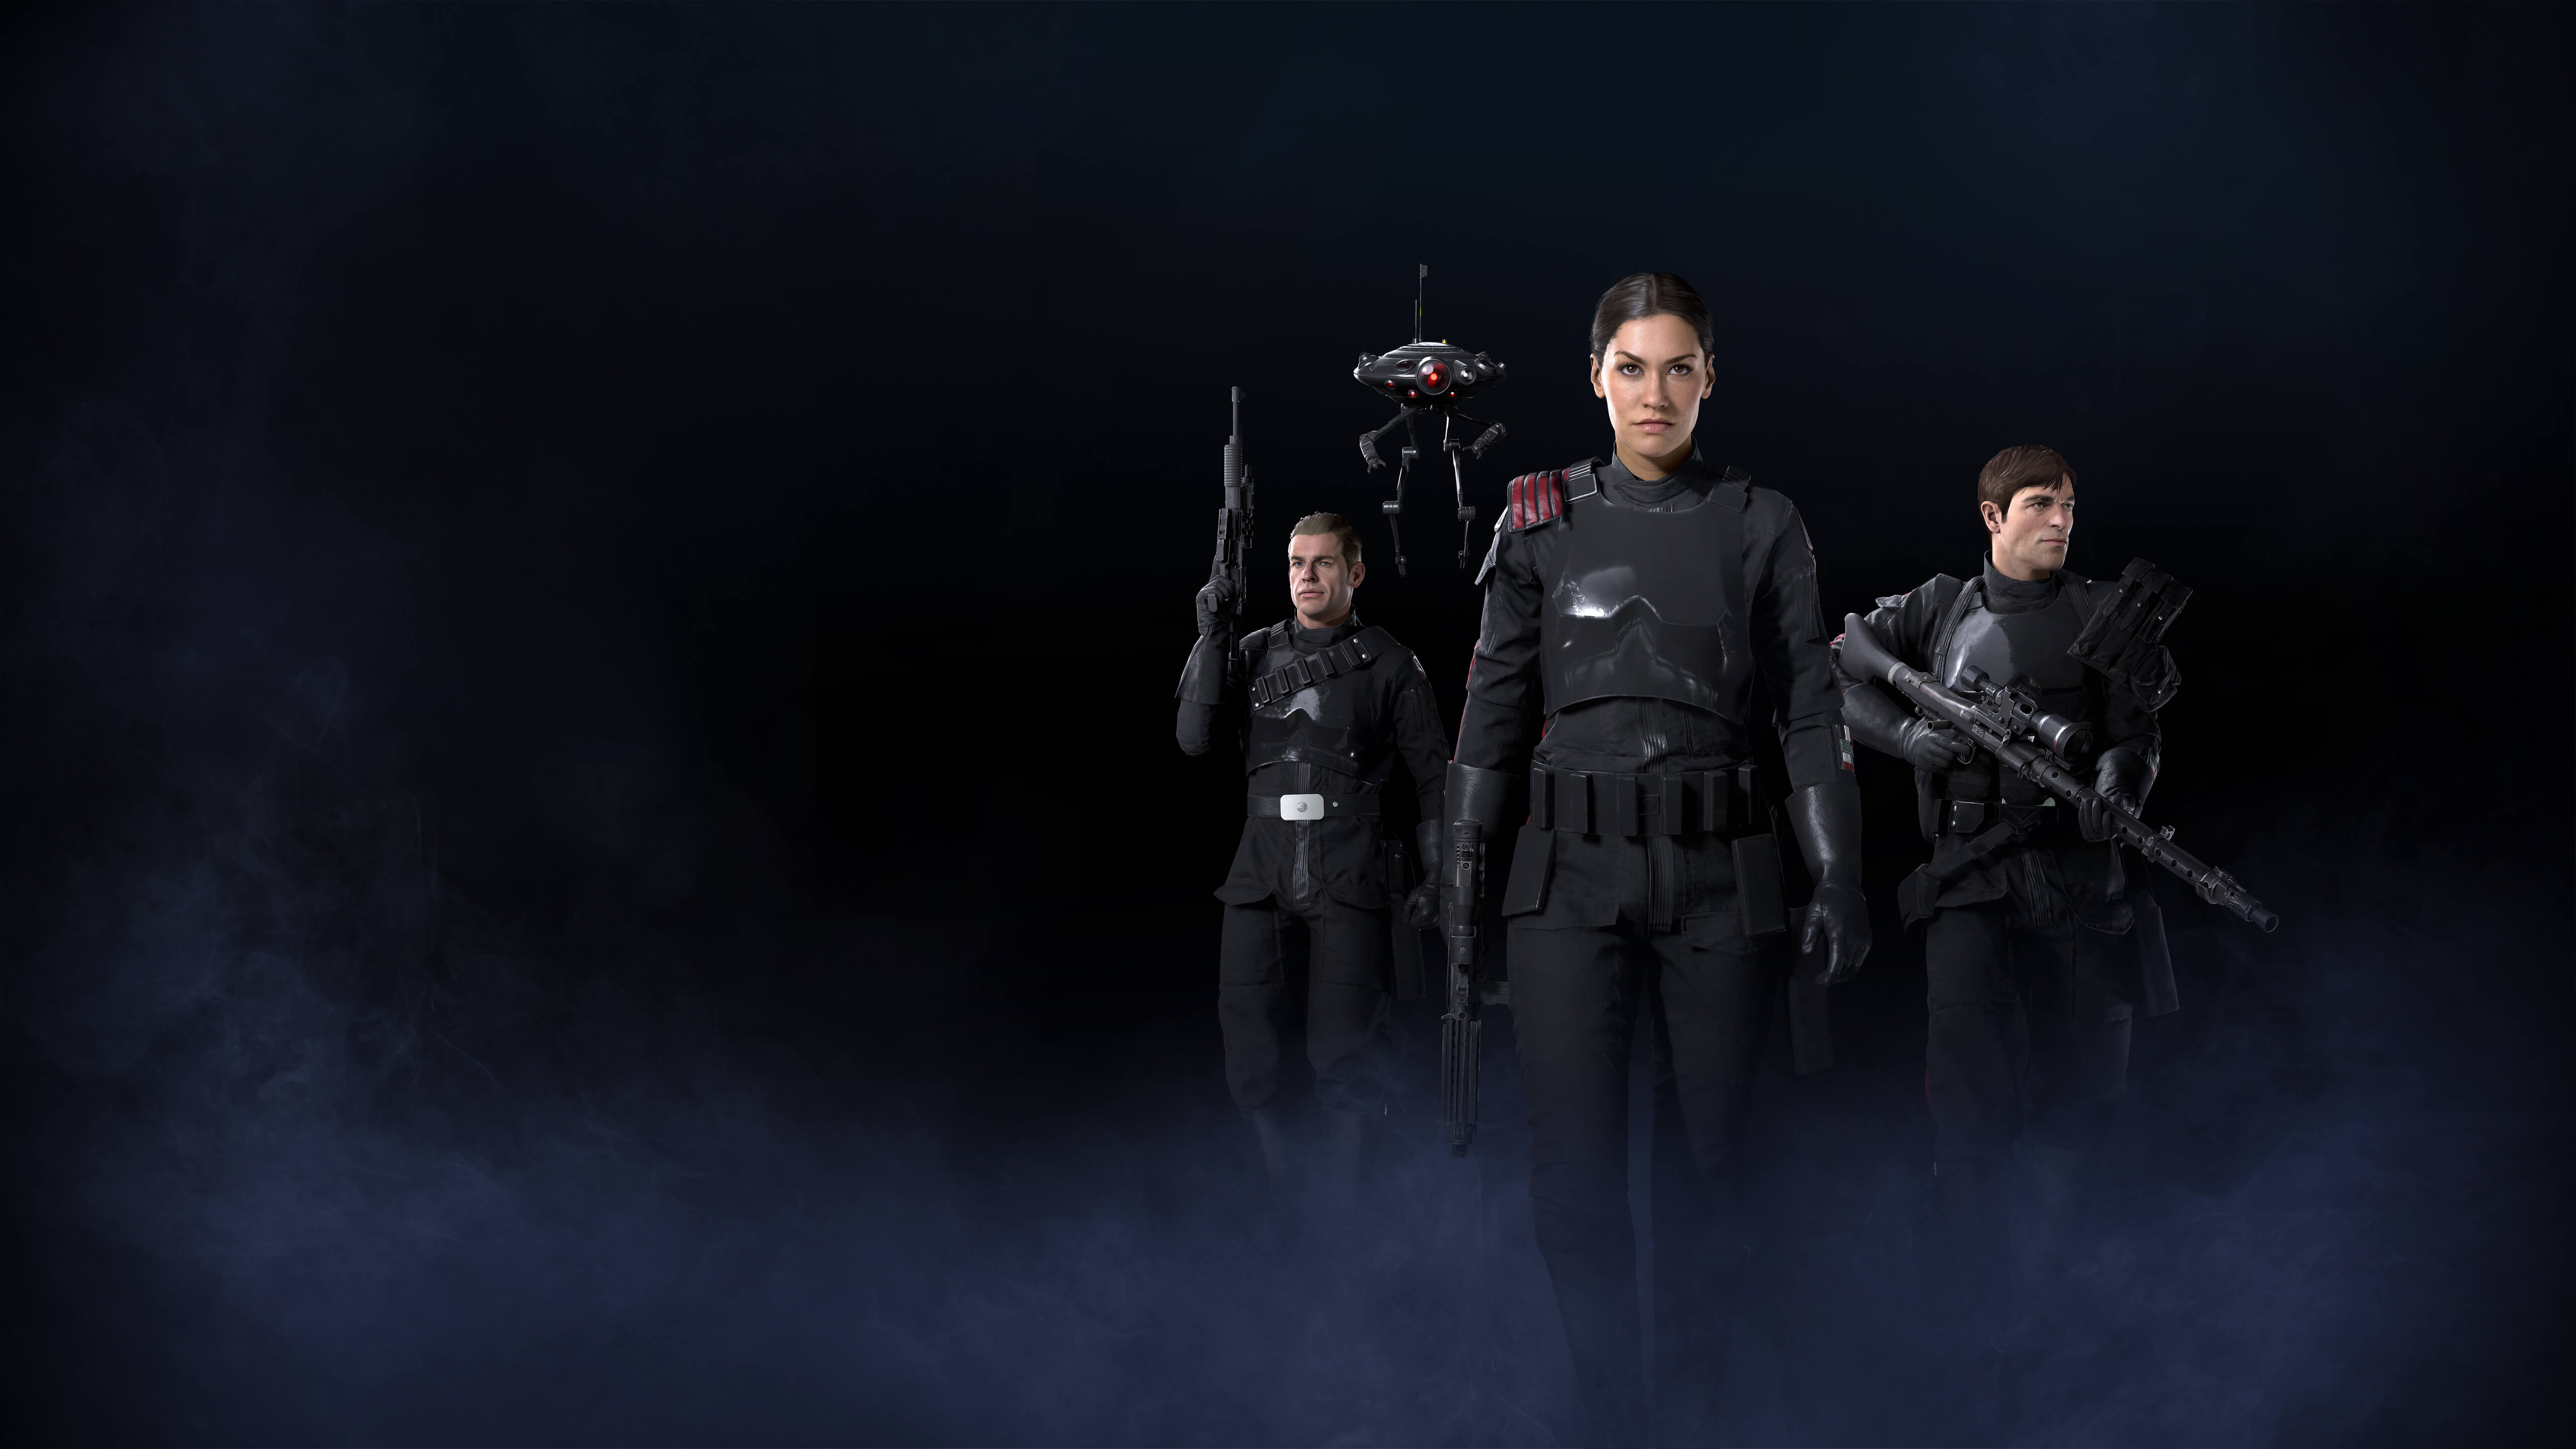 1440x2960 Star Wars Battlefront Ii Inferno Squad Samsung Galaxy Note 9 8 S9 S8 S8 Qhd Wallpaper Hd Games 4k Wallpapers Images Photos And Background